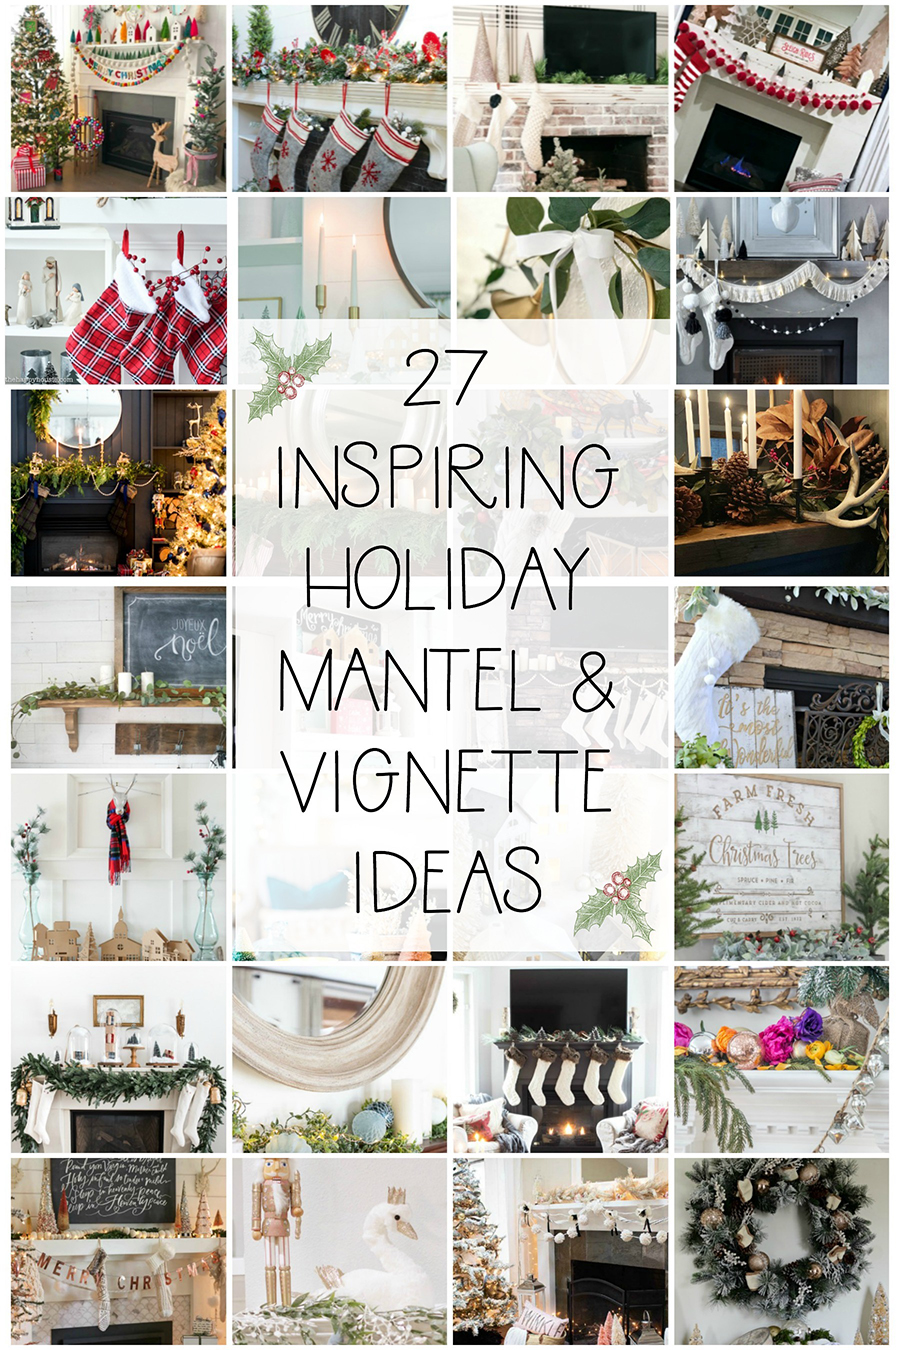 27 inspiring holiday mantel and vignette ideas Seasonal Simplicity Christmas Series #diy #christmasdecorations #winterdecor